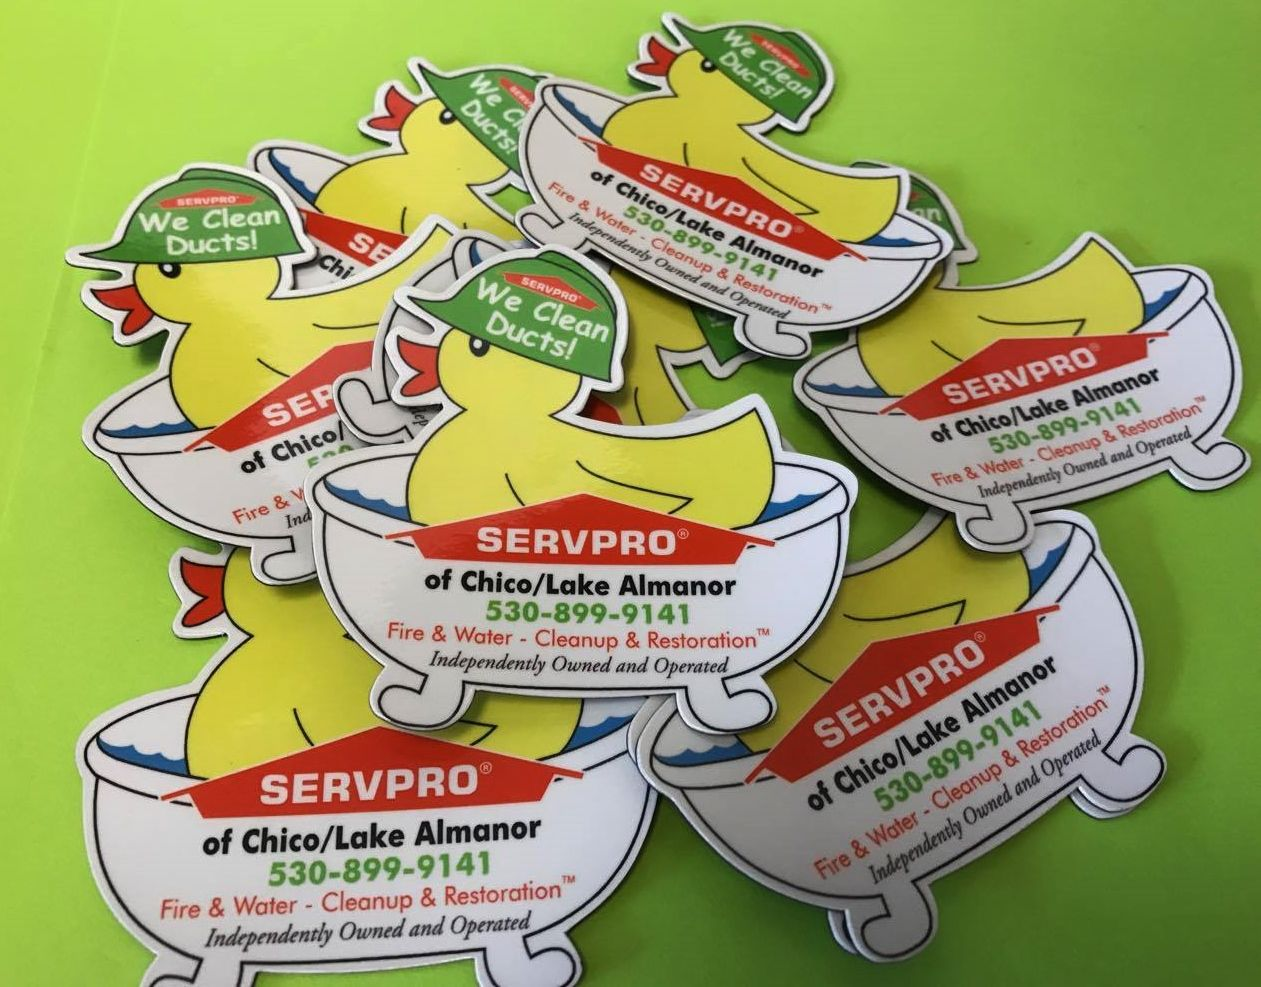 Did you know that SERVPRO of Chico/Lake Almanor does Duck